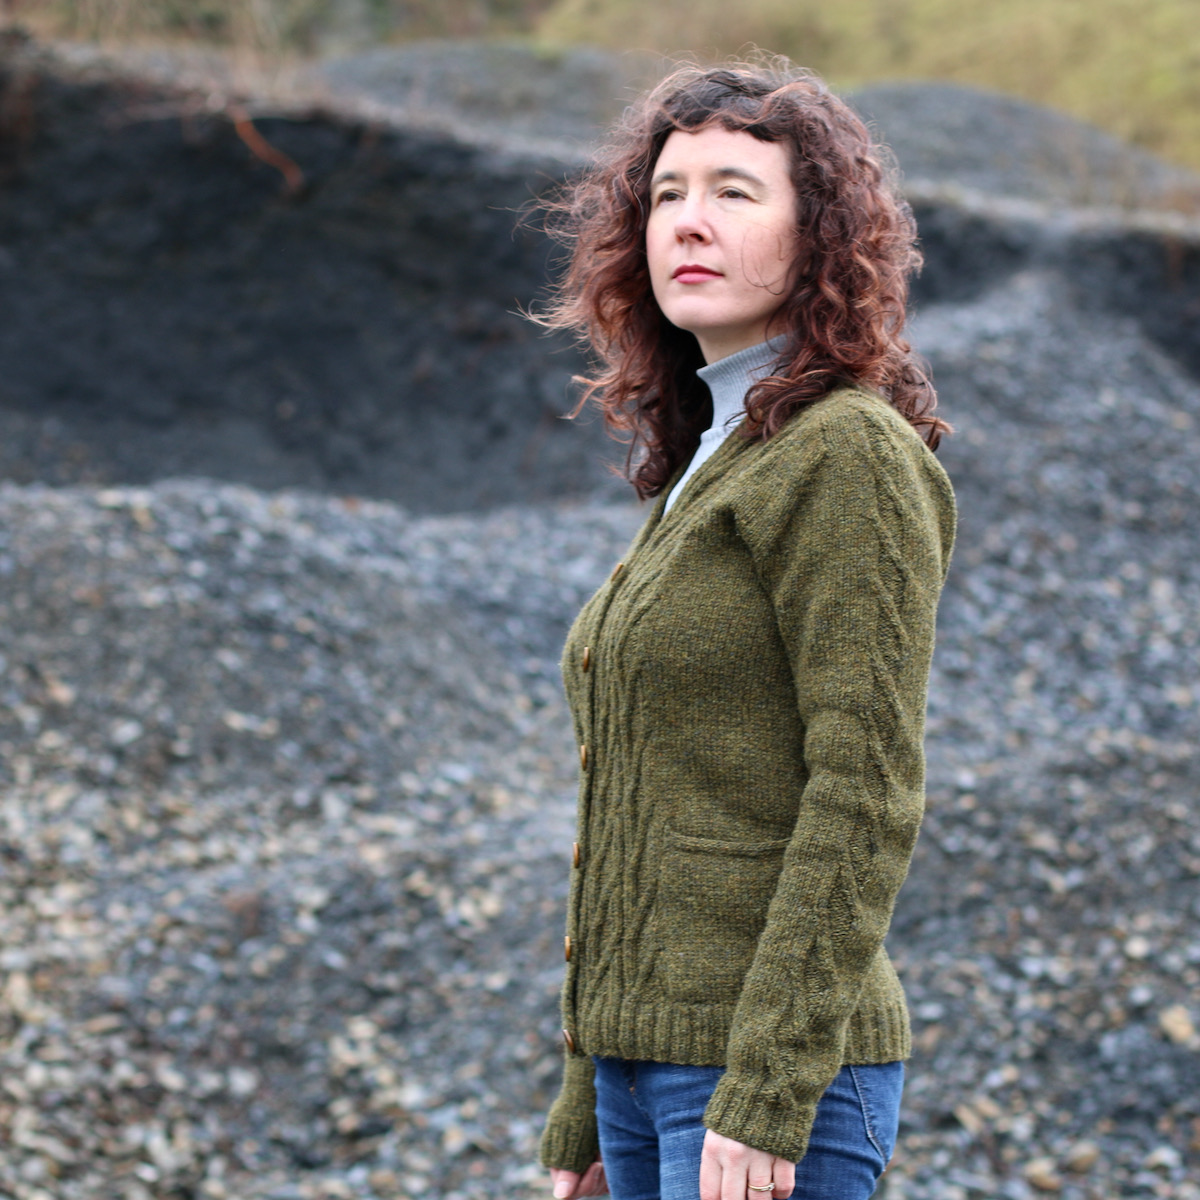 woman in green cardigan looking to side with pile of stones behind her